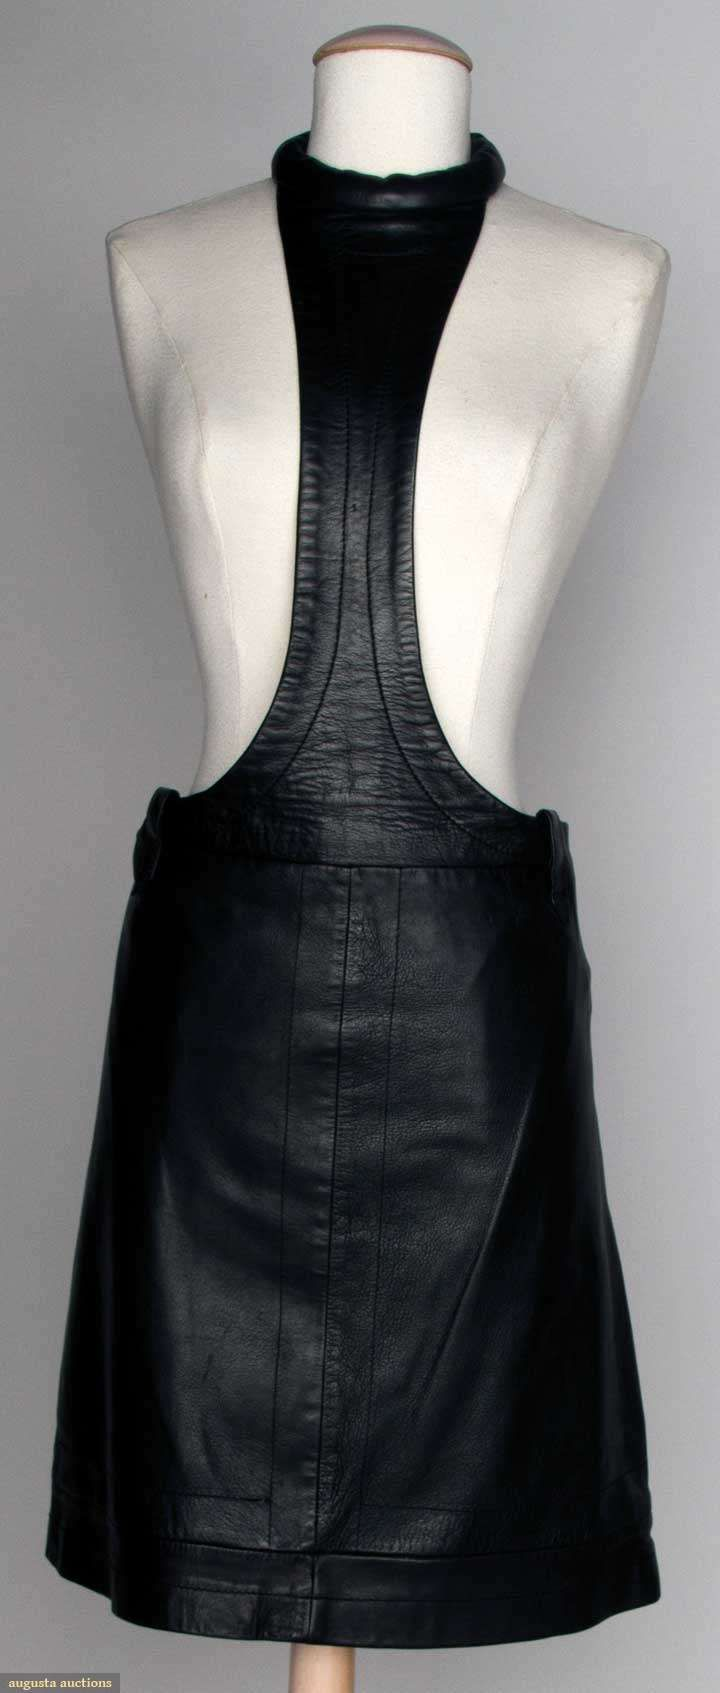 "Pierre Cardin Leather Skirt, C. 1970, Augusta Auctions -- Soft black leather, sits on hip, center column ends in rouleau collar, unlabeled, Low W 31"", Skirt L 19"", excellent. Bought at Pierre Cardin in Paris. Provenance: Mme. Erna de Paz, Argentine & Parisienne socialite & friend of Msr. Cardin."